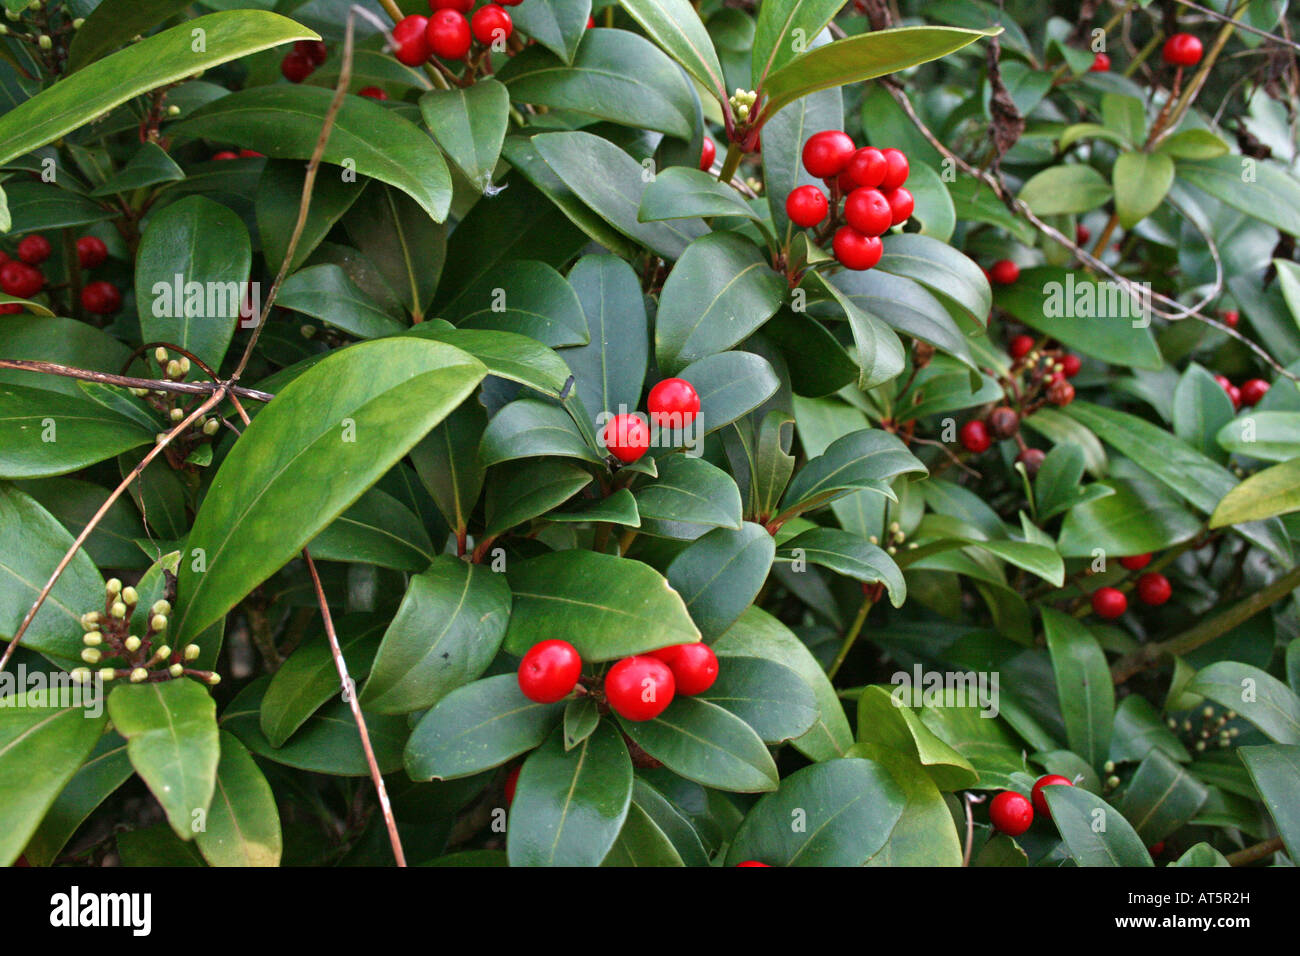 Red Berries Amongst Green Leaves In A Bush Stock Photo 16211464